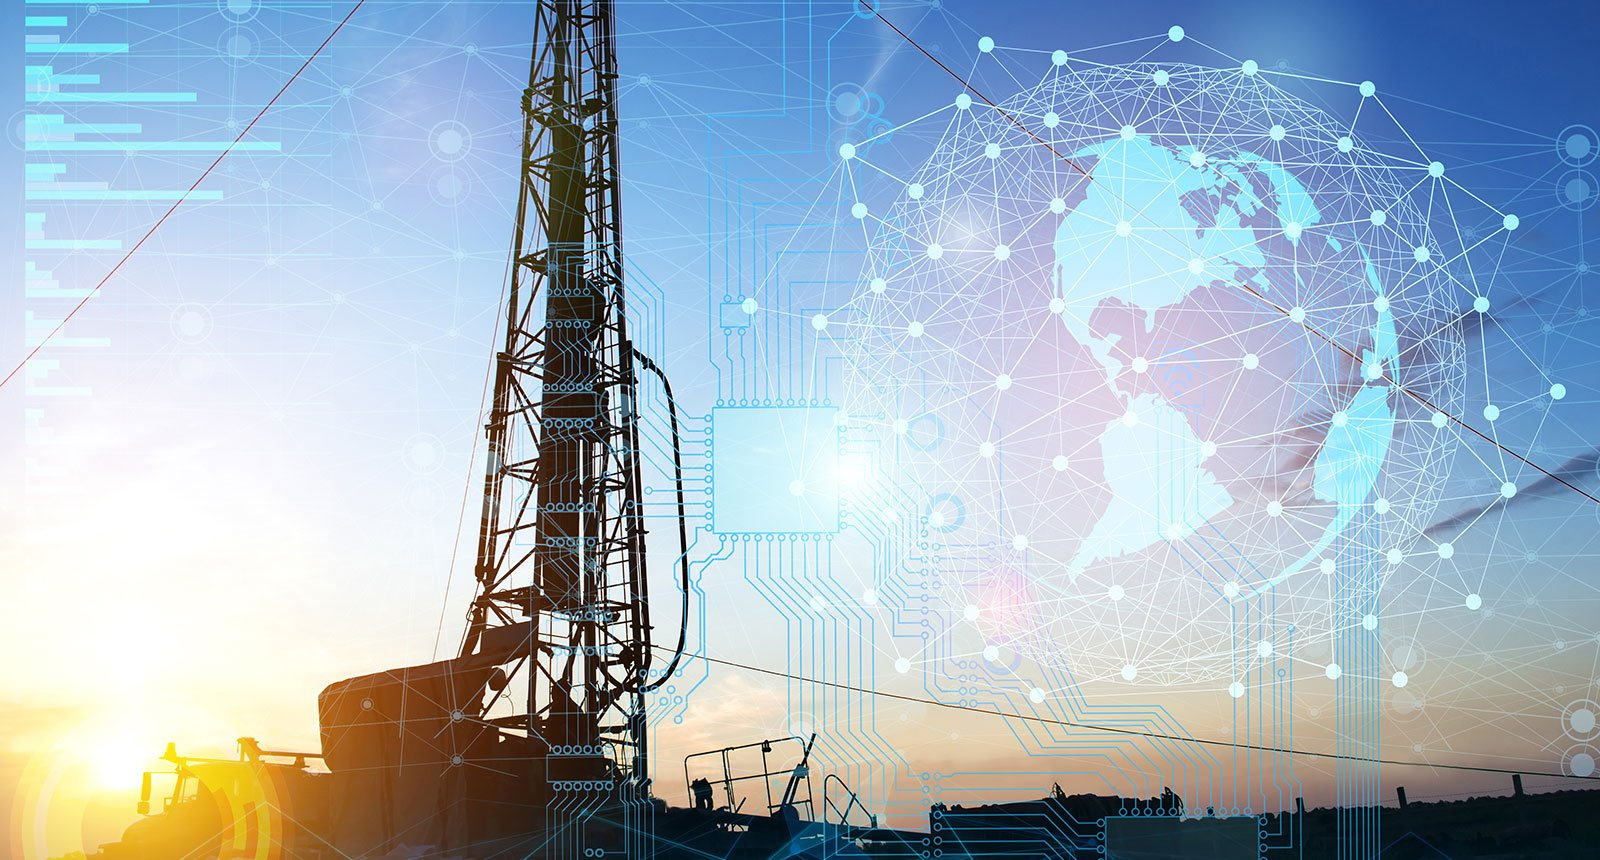 Brookside Energy has completed drilling and casing operations on its Jewell Well project in the world-class Anadarko Basin.